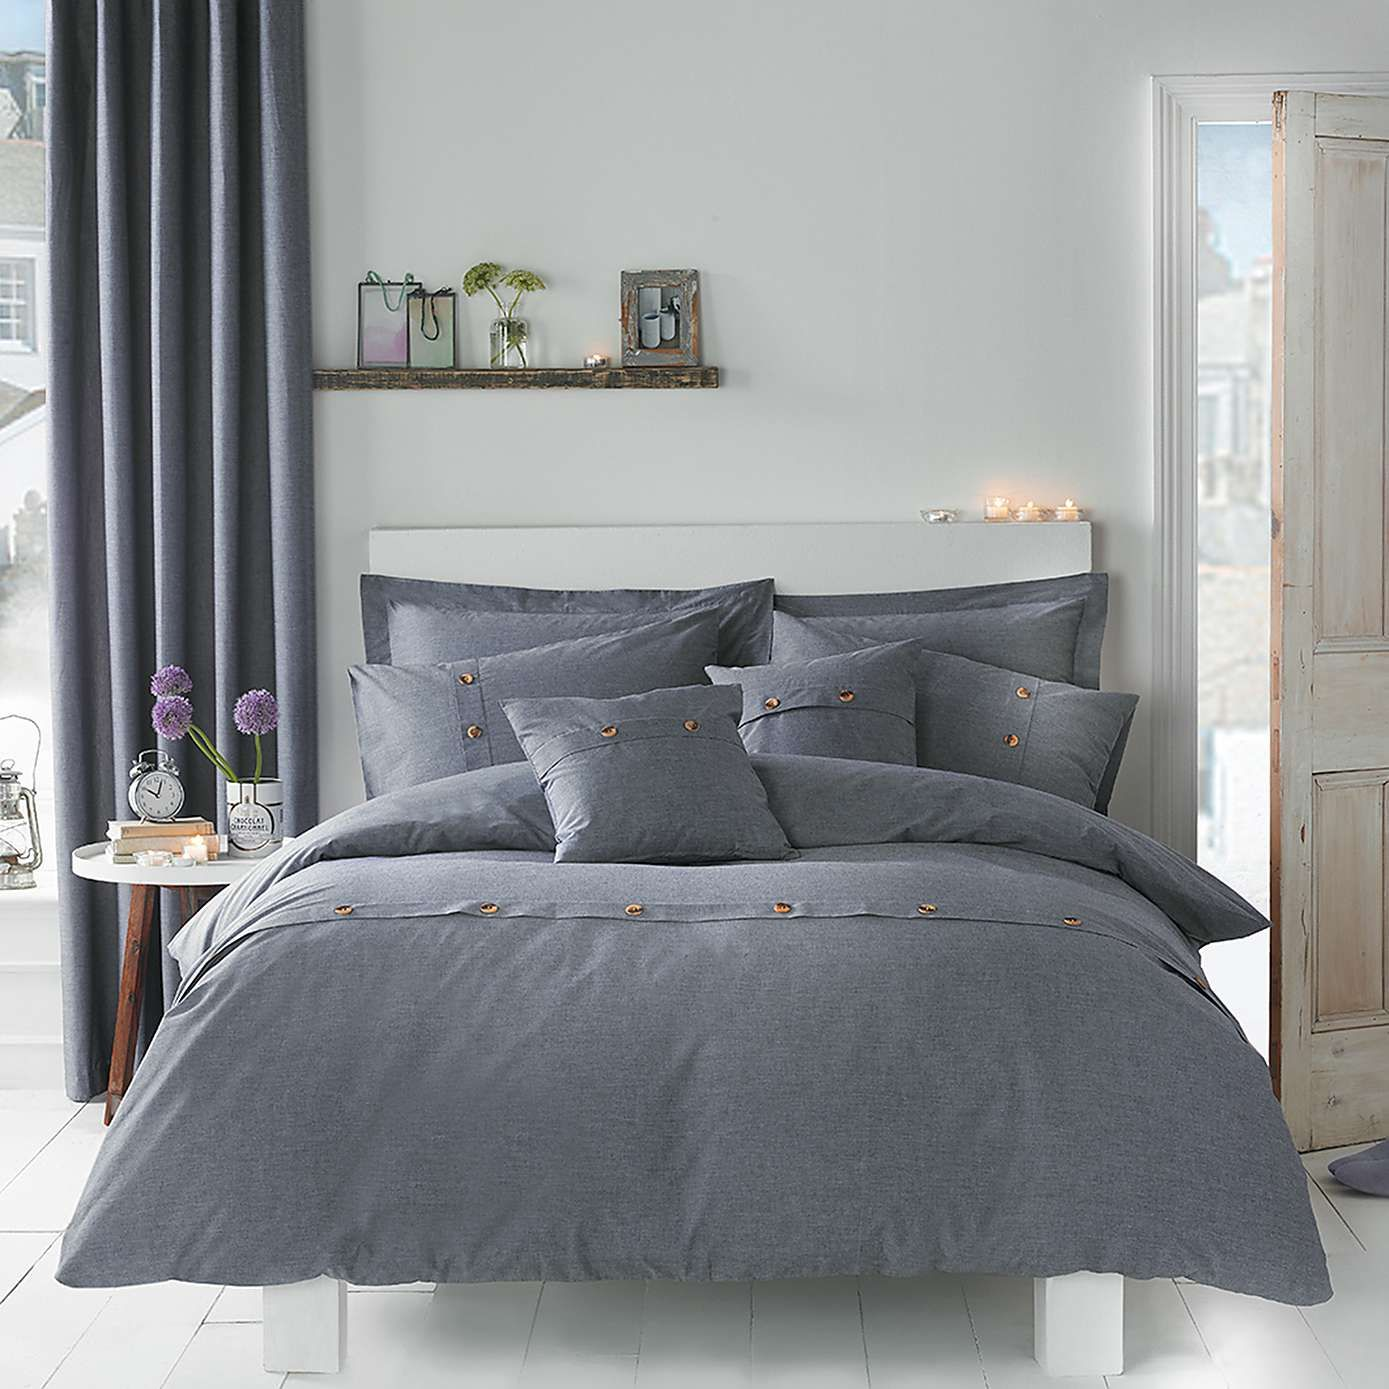 cover twin reversible unison chambray duvet sand stone